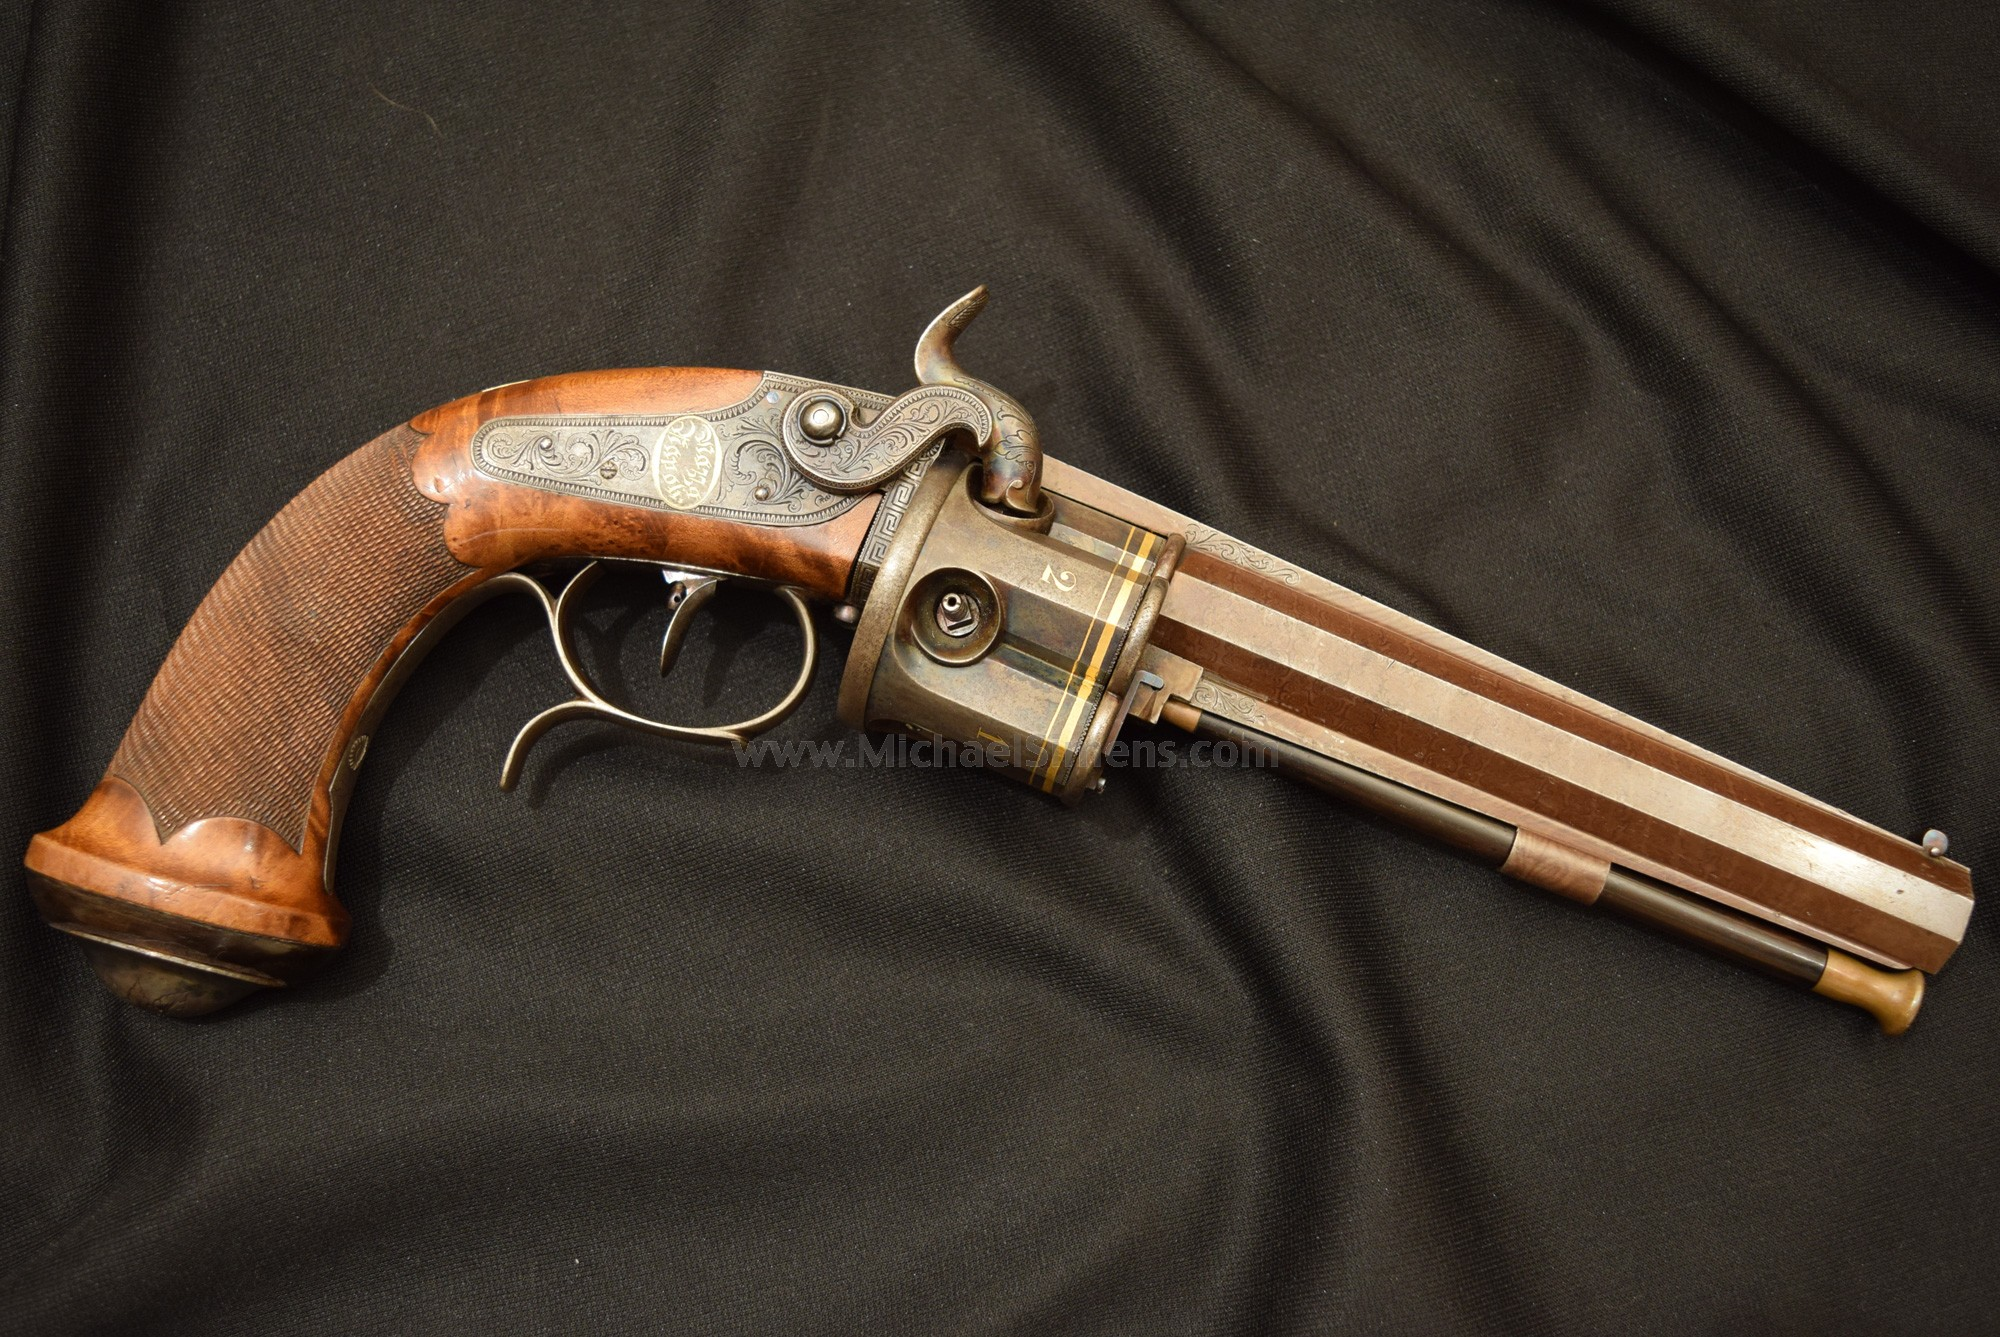 COLLIER PERCUSSION REVOLVER MADE FOR THE PRINCE OF SALERNO.